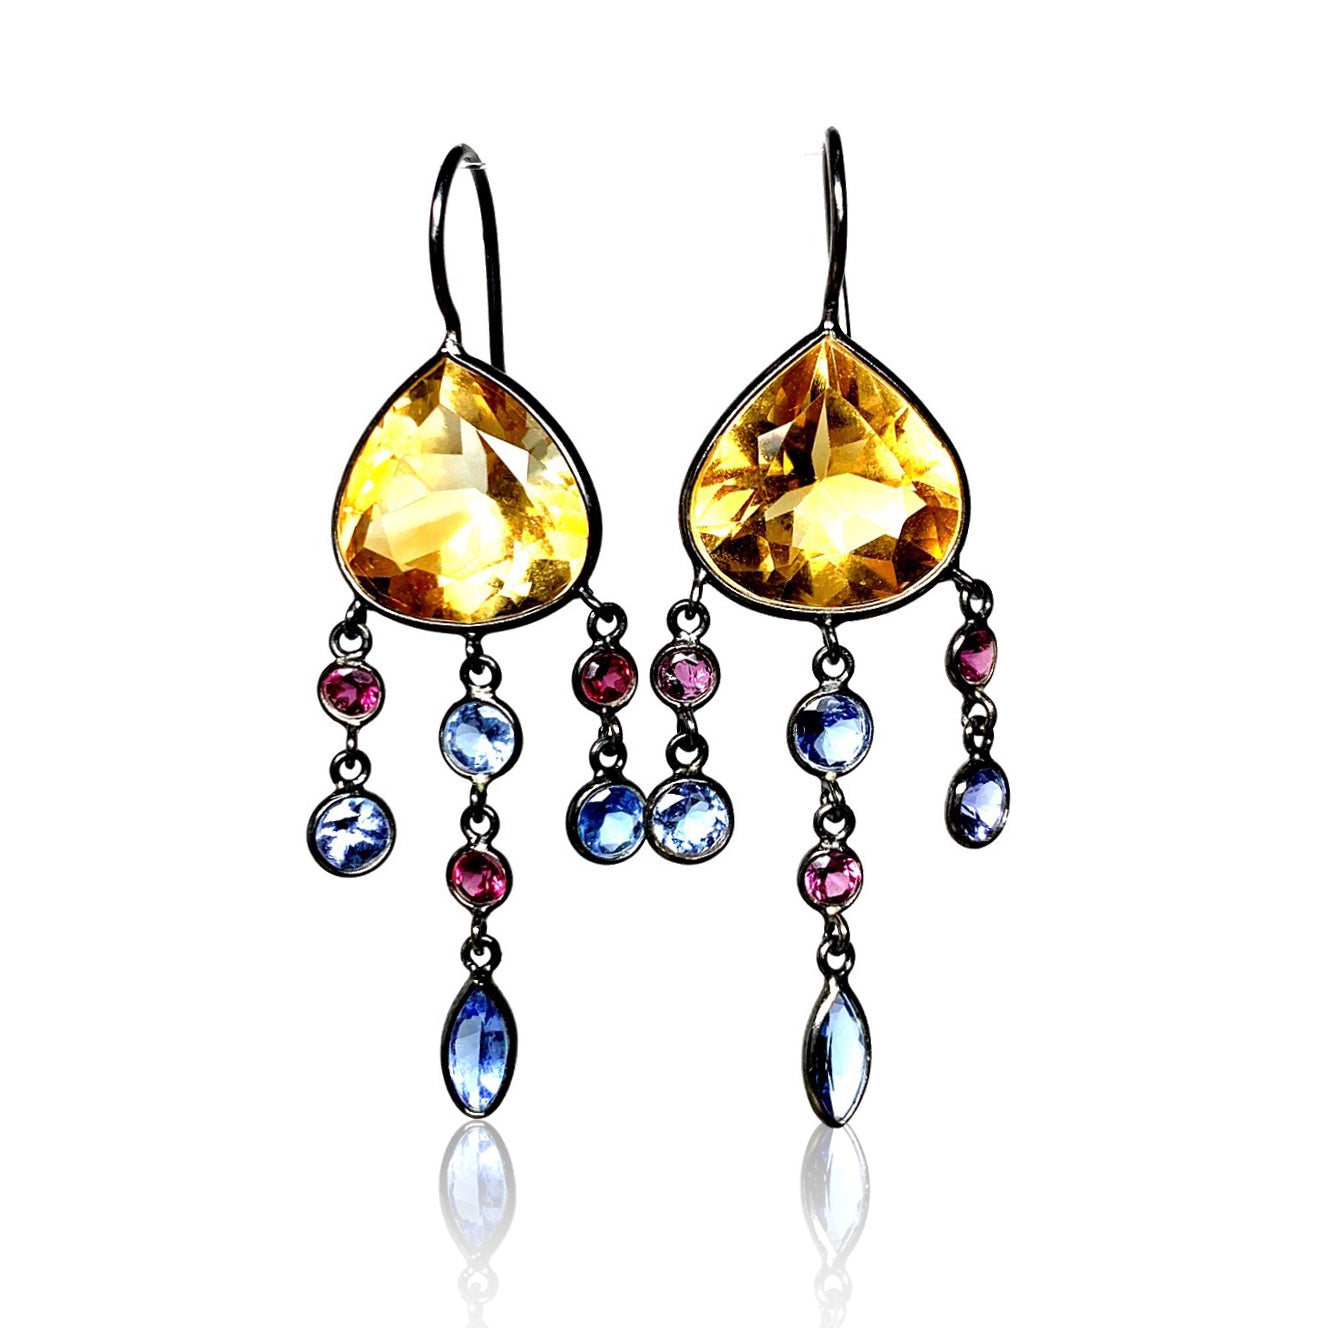 Citrine with Rhodolite Garnet and Tanzanite Dangles